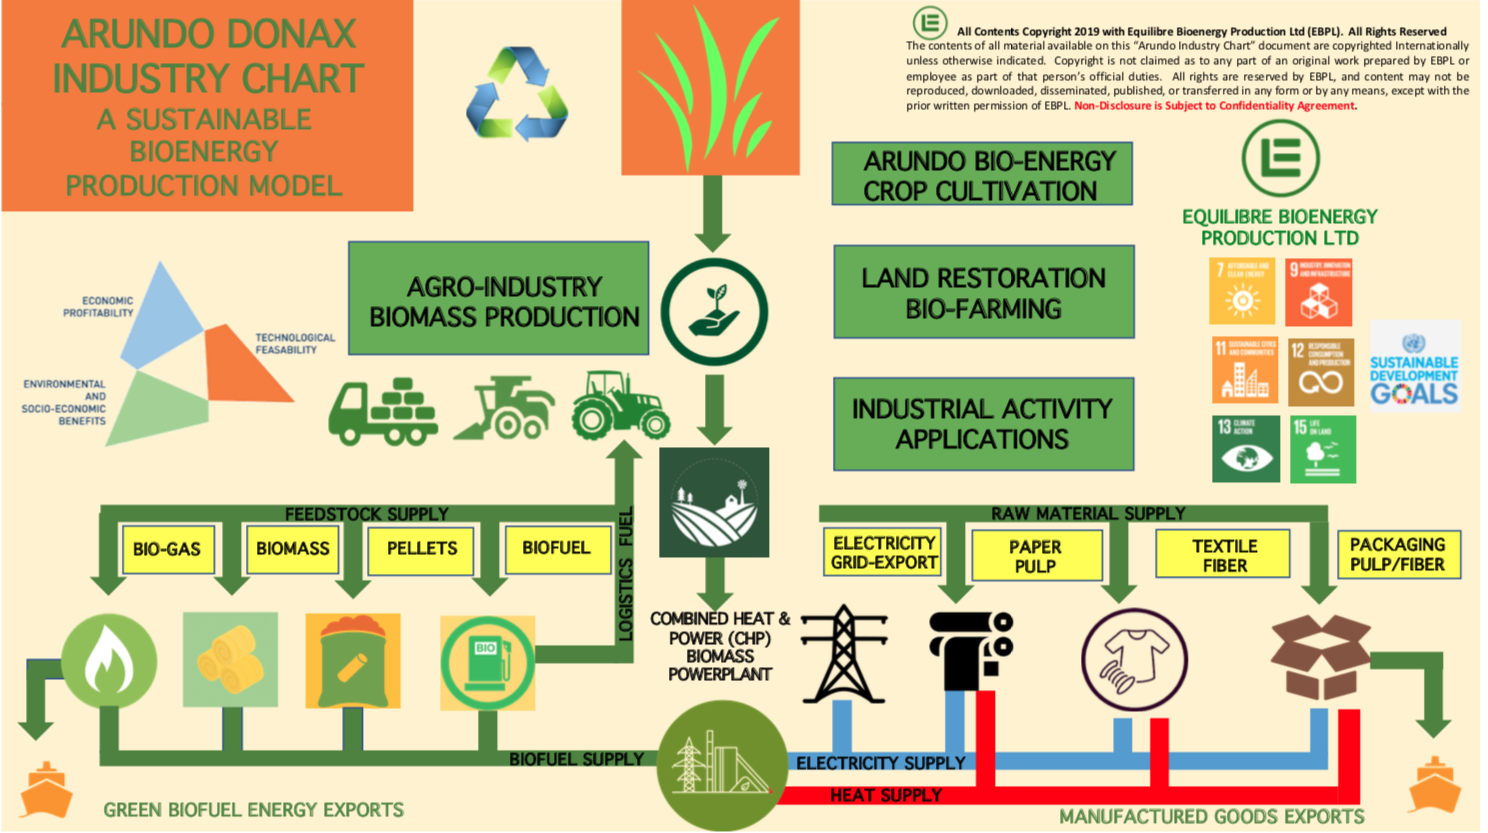 Gallery BIOENERGY, ELECTRICITY & FUEL PELLETS PRODUCTION FROM ARUNDO DONAX BIOMASS 2